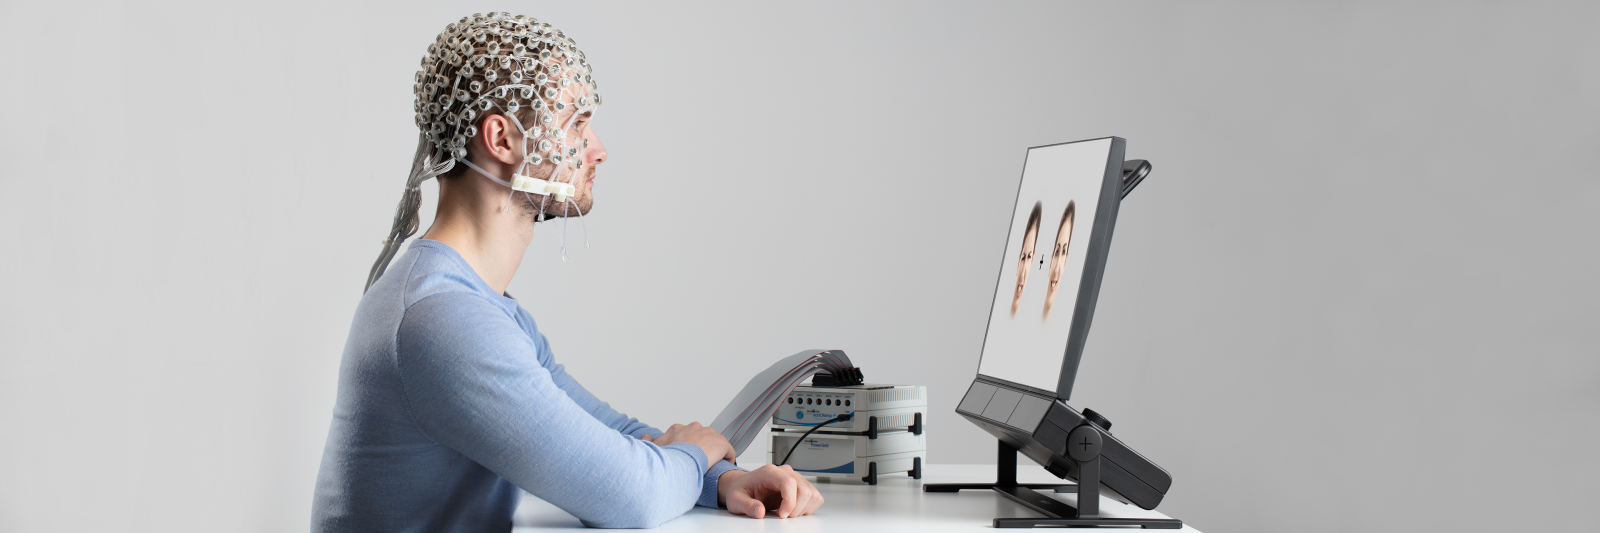 A man using EEG cap looking at Tobii Pro Spectrum